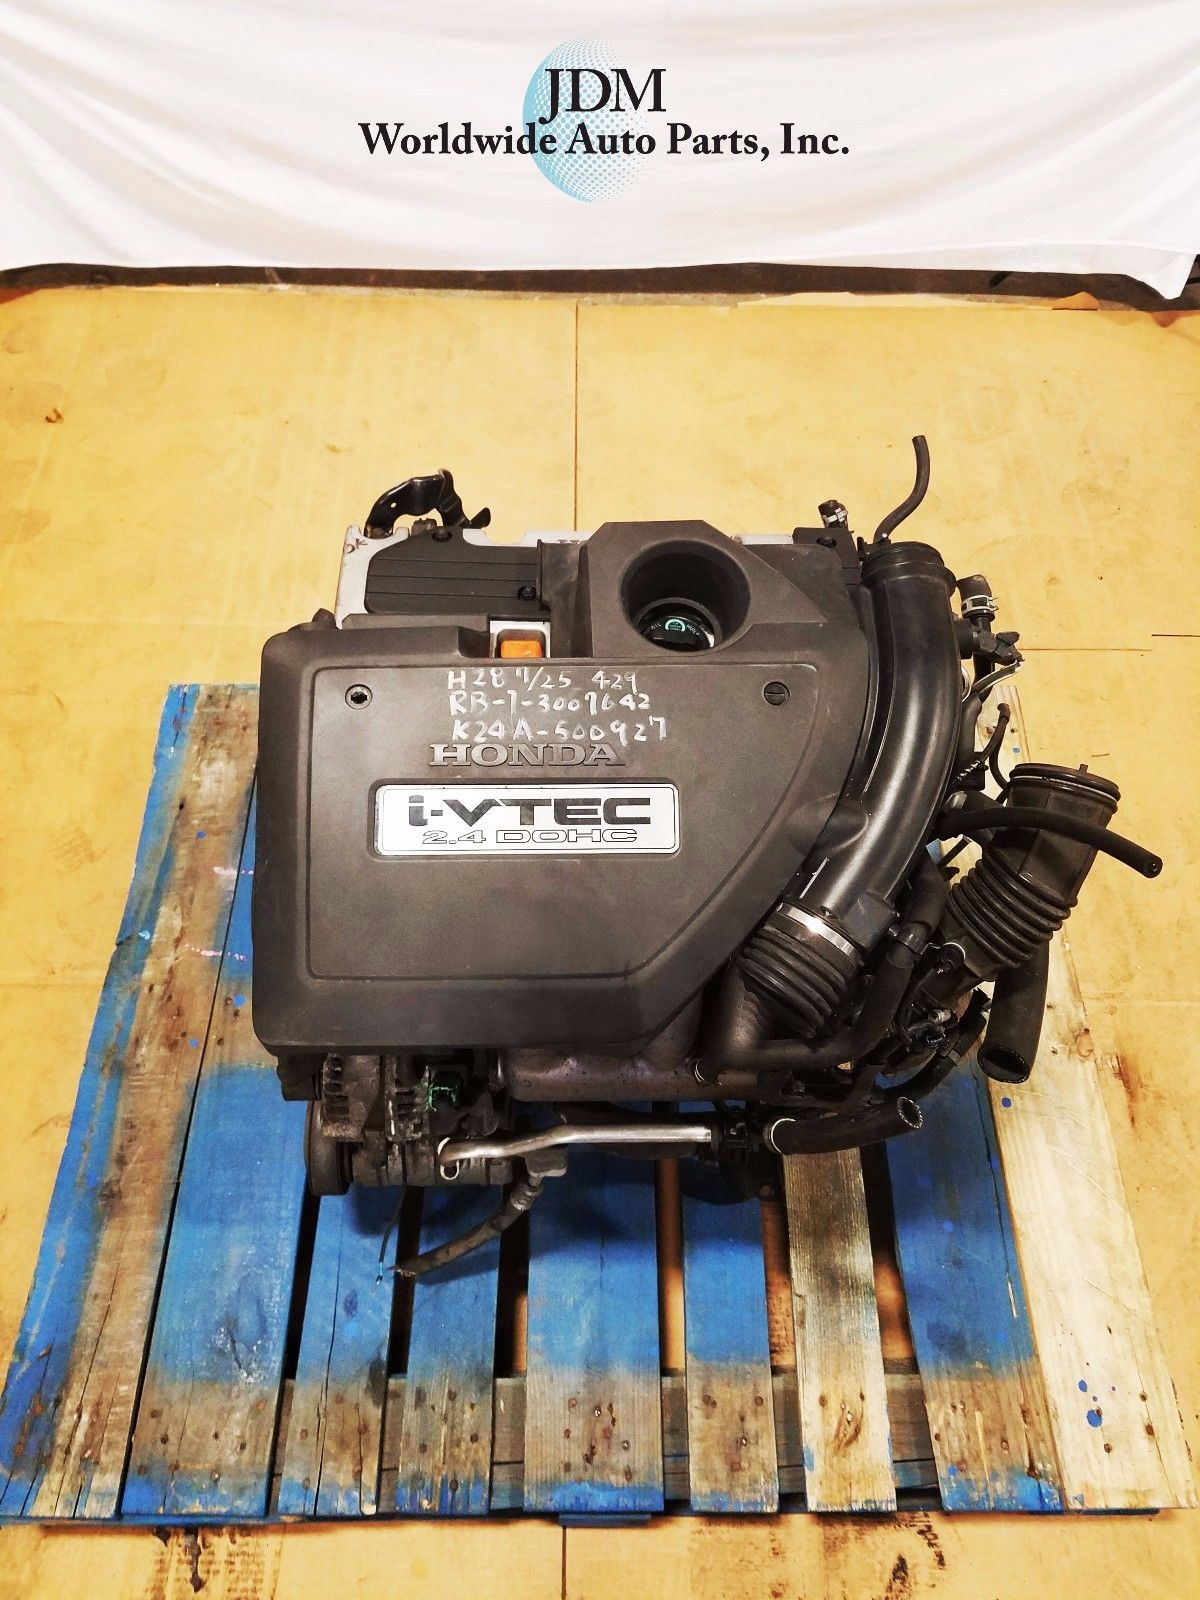 HONDA ACCORD ACURA TSX 2.4L DOHC I-VTEC HIGH COMPRESSION ENGINE JDM K24A K24